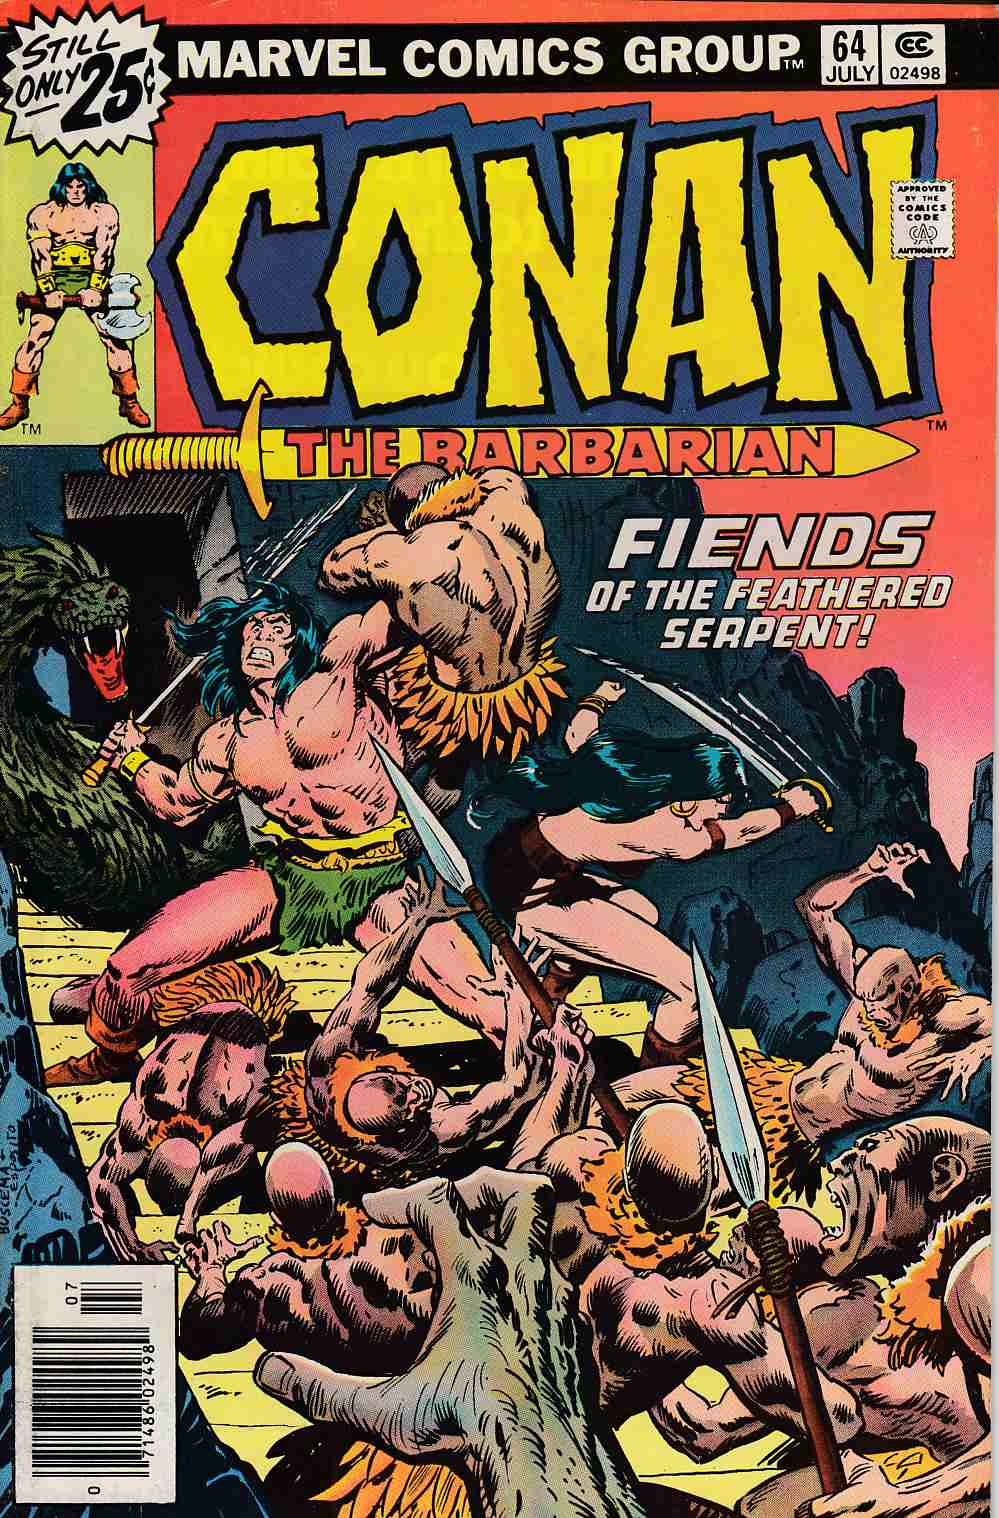 Conan the Barbarian #64 Fine Plus (6.5) [Marvel Comic] LARGE